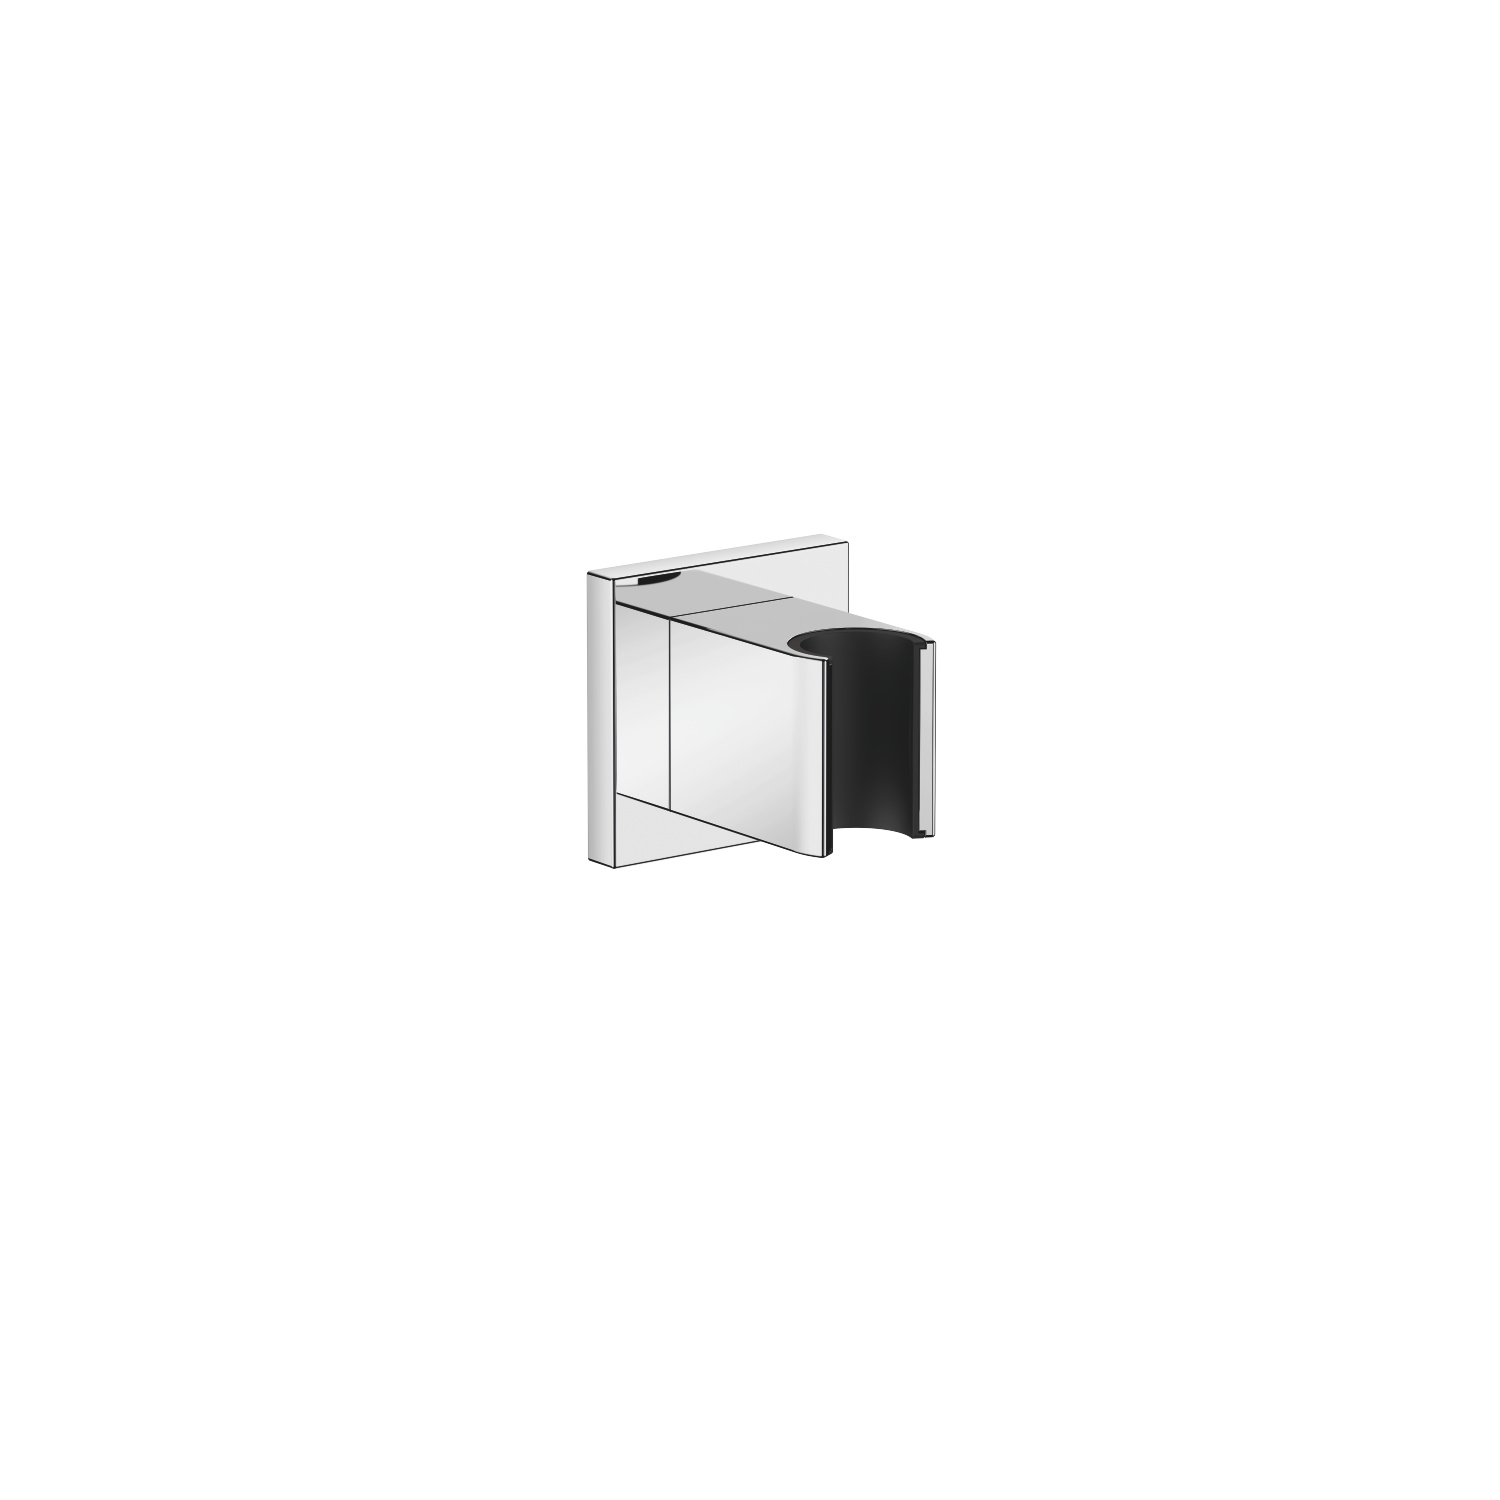 Wall bracket - matt black - 28 050 980-33